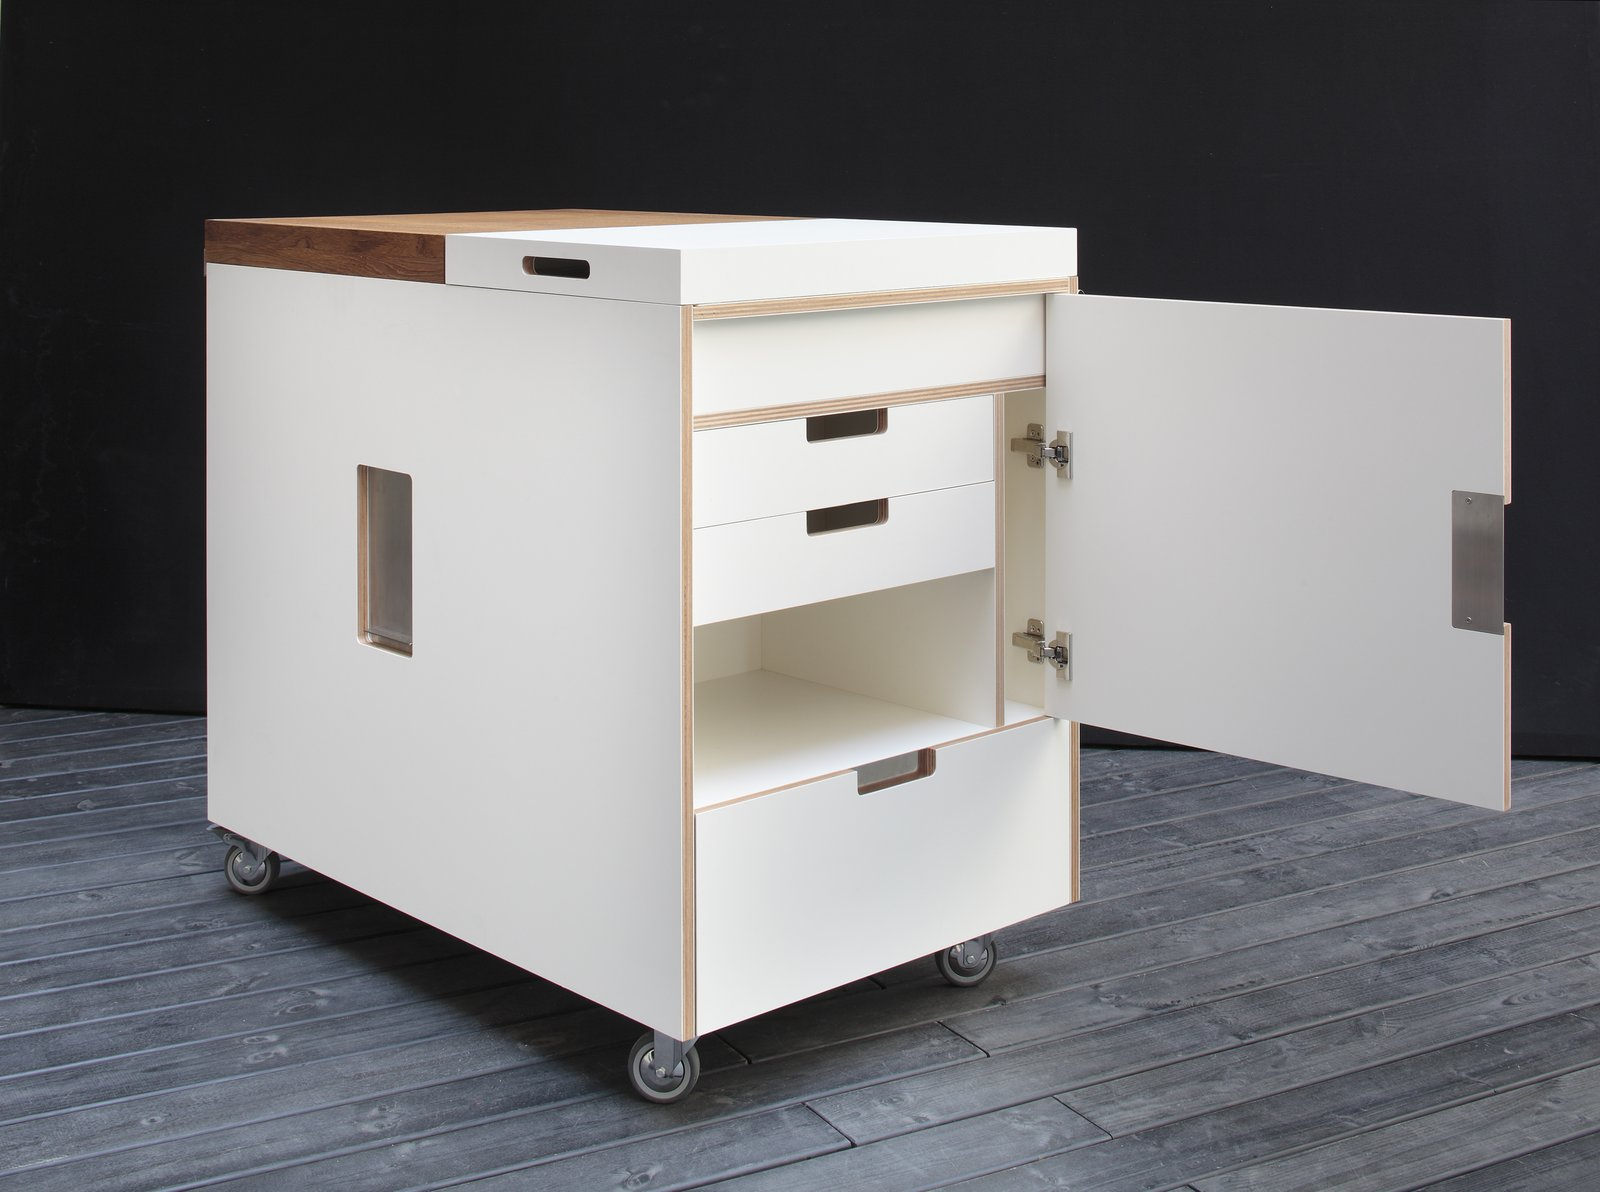 """80 years  In 1934, Piero Boffi left his job with aircraft manufacturer Caproni and established Boffi, a kitchen and bathroom company dedicated to craft-like quality. Joe Colombo's 1963 Minikitchen, a large multi-functional trolley, remains one of Boffi's most popular products. Photo courtesy of Boffi.  Search """"diana mini"""" from Celebrating Anniversaries of Iconic Design"""